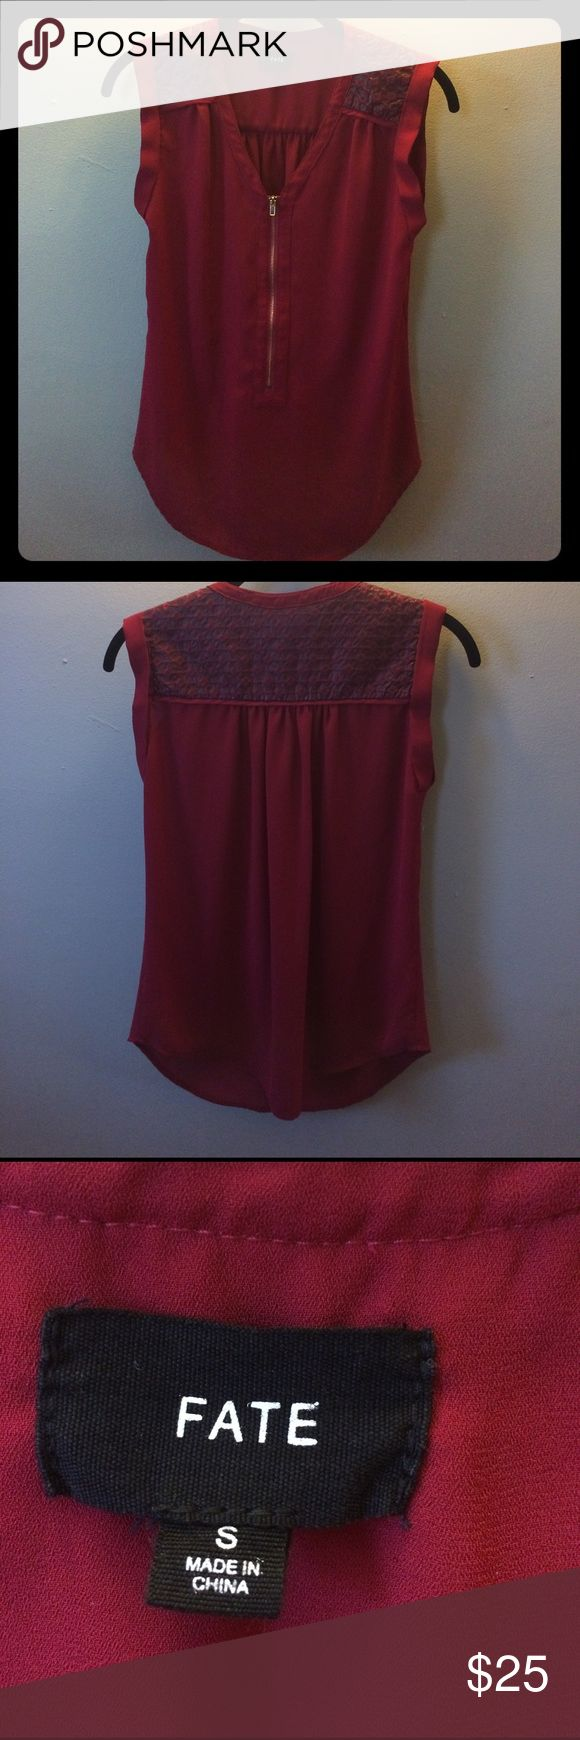 Antonietta Zip-Front Sleeveless Blouse Beautiful Antonietta Zip-Front Sleeveless Blouse with front gold zipper and patterned top. Great for work or a night on the town! Only worn once. Fate Tops Blouses